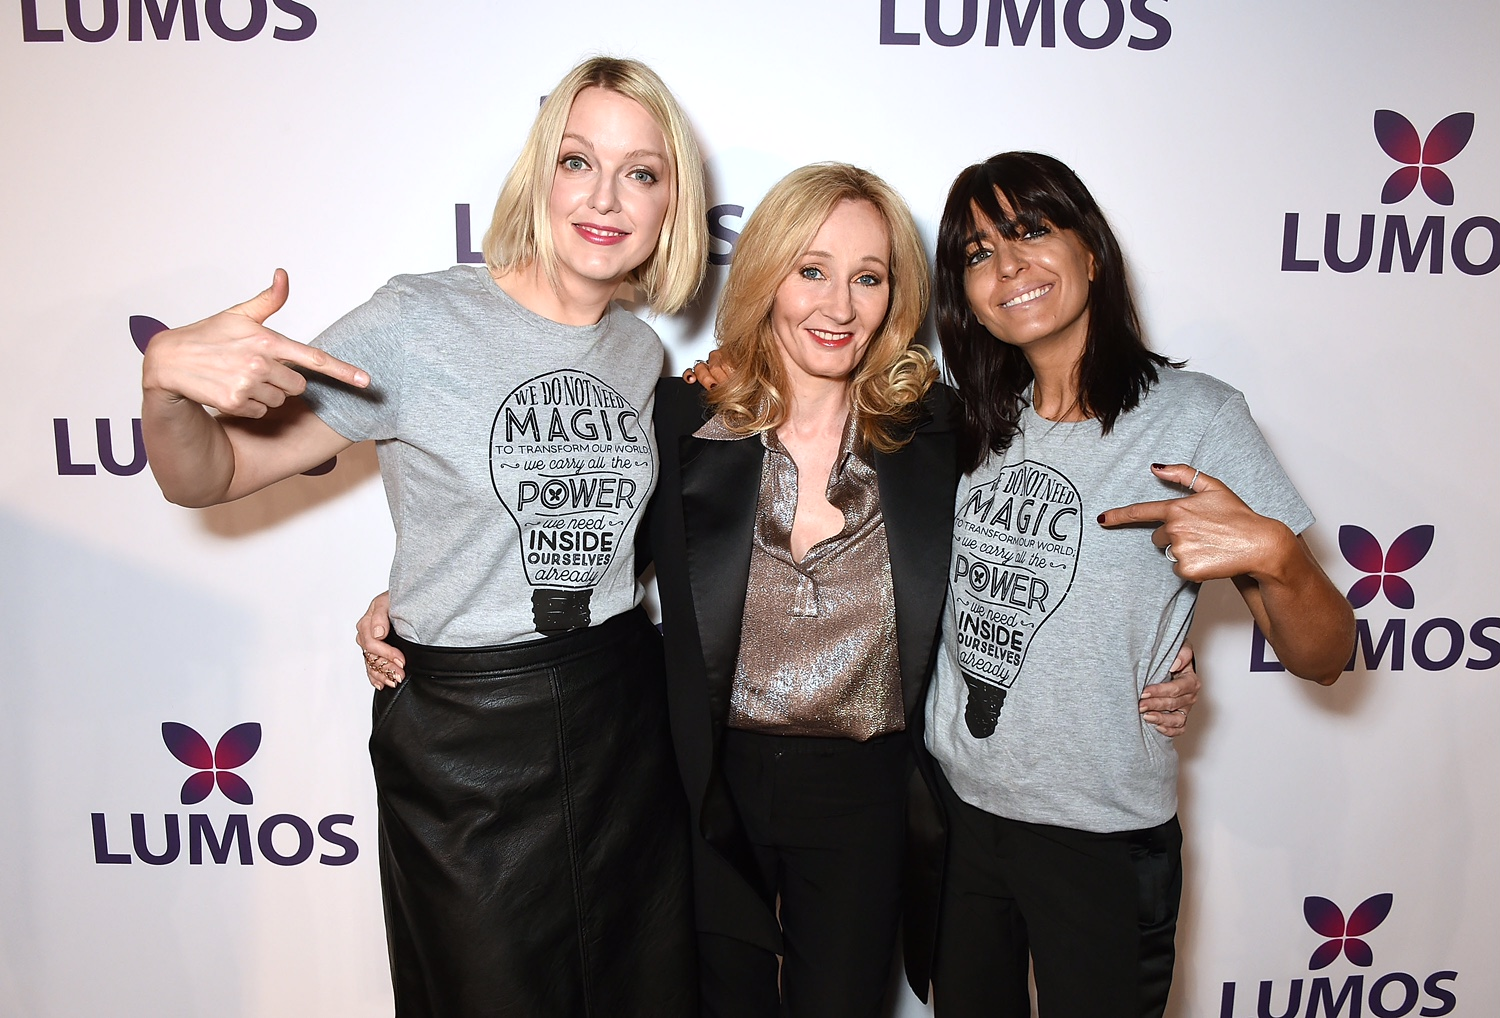 jk rowling essay the daily beast j k rowling n pottermore  j k rowling and julie walters make most inspirational over 50 london england 17 l r lauren laverne